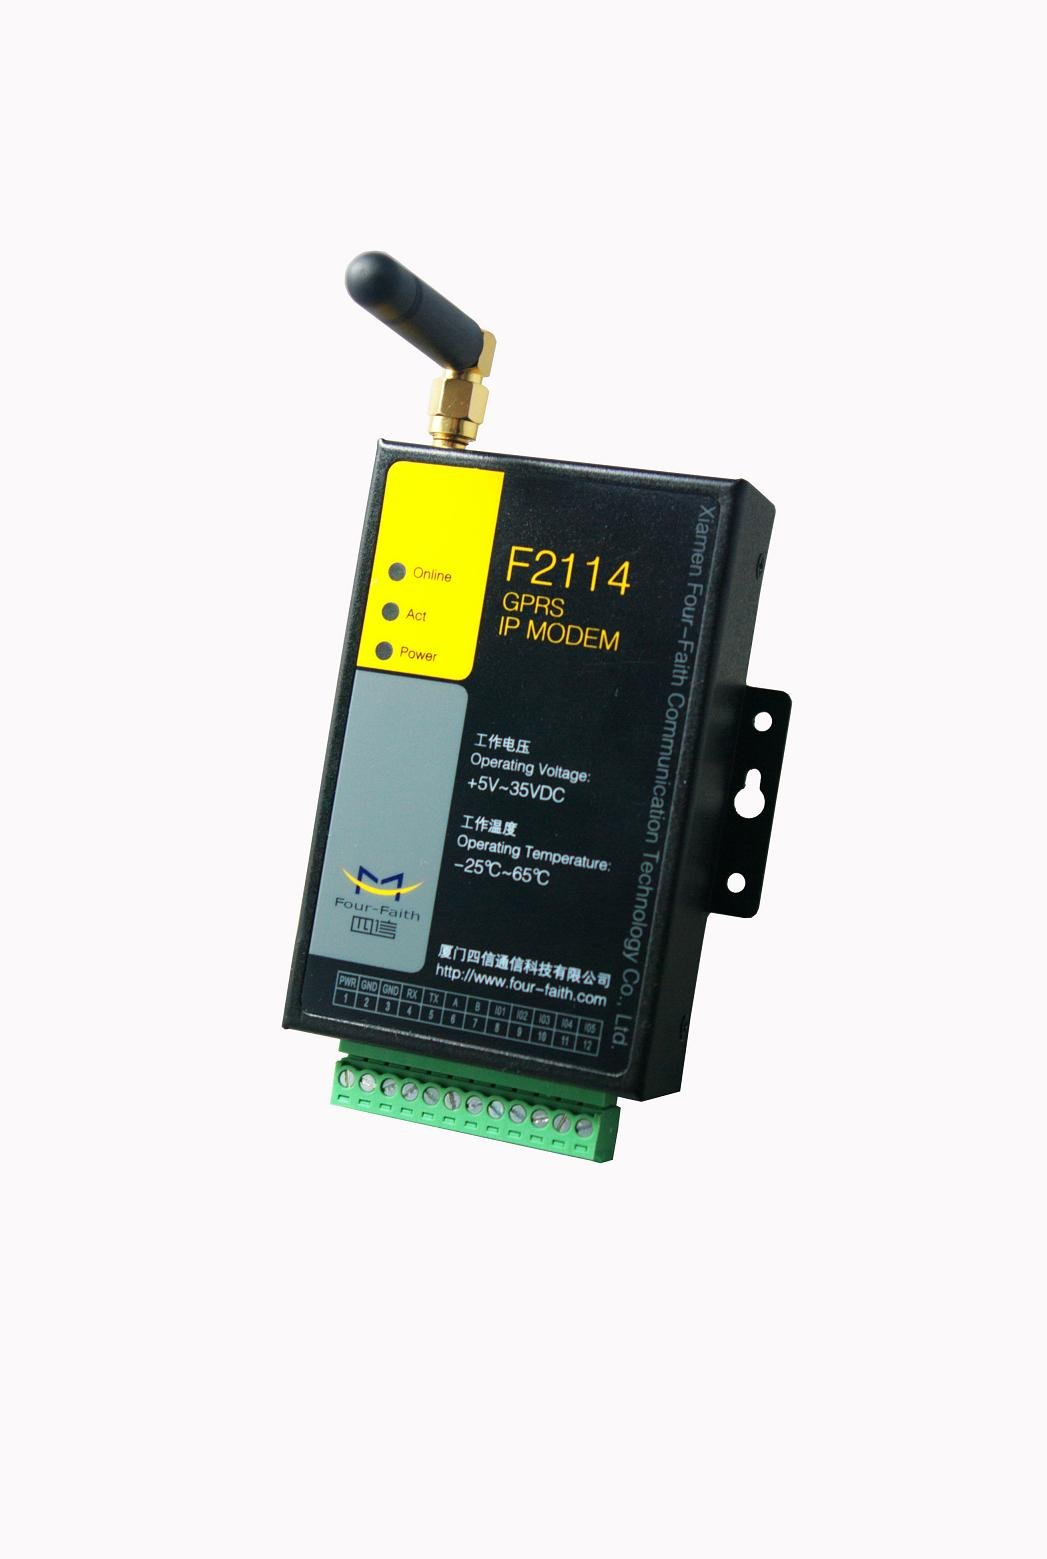 Wireless M2M/SCADA Gsm Gprs Modem for PLC ,Meter Reading,Smart Grid Monitoring(F2114P)